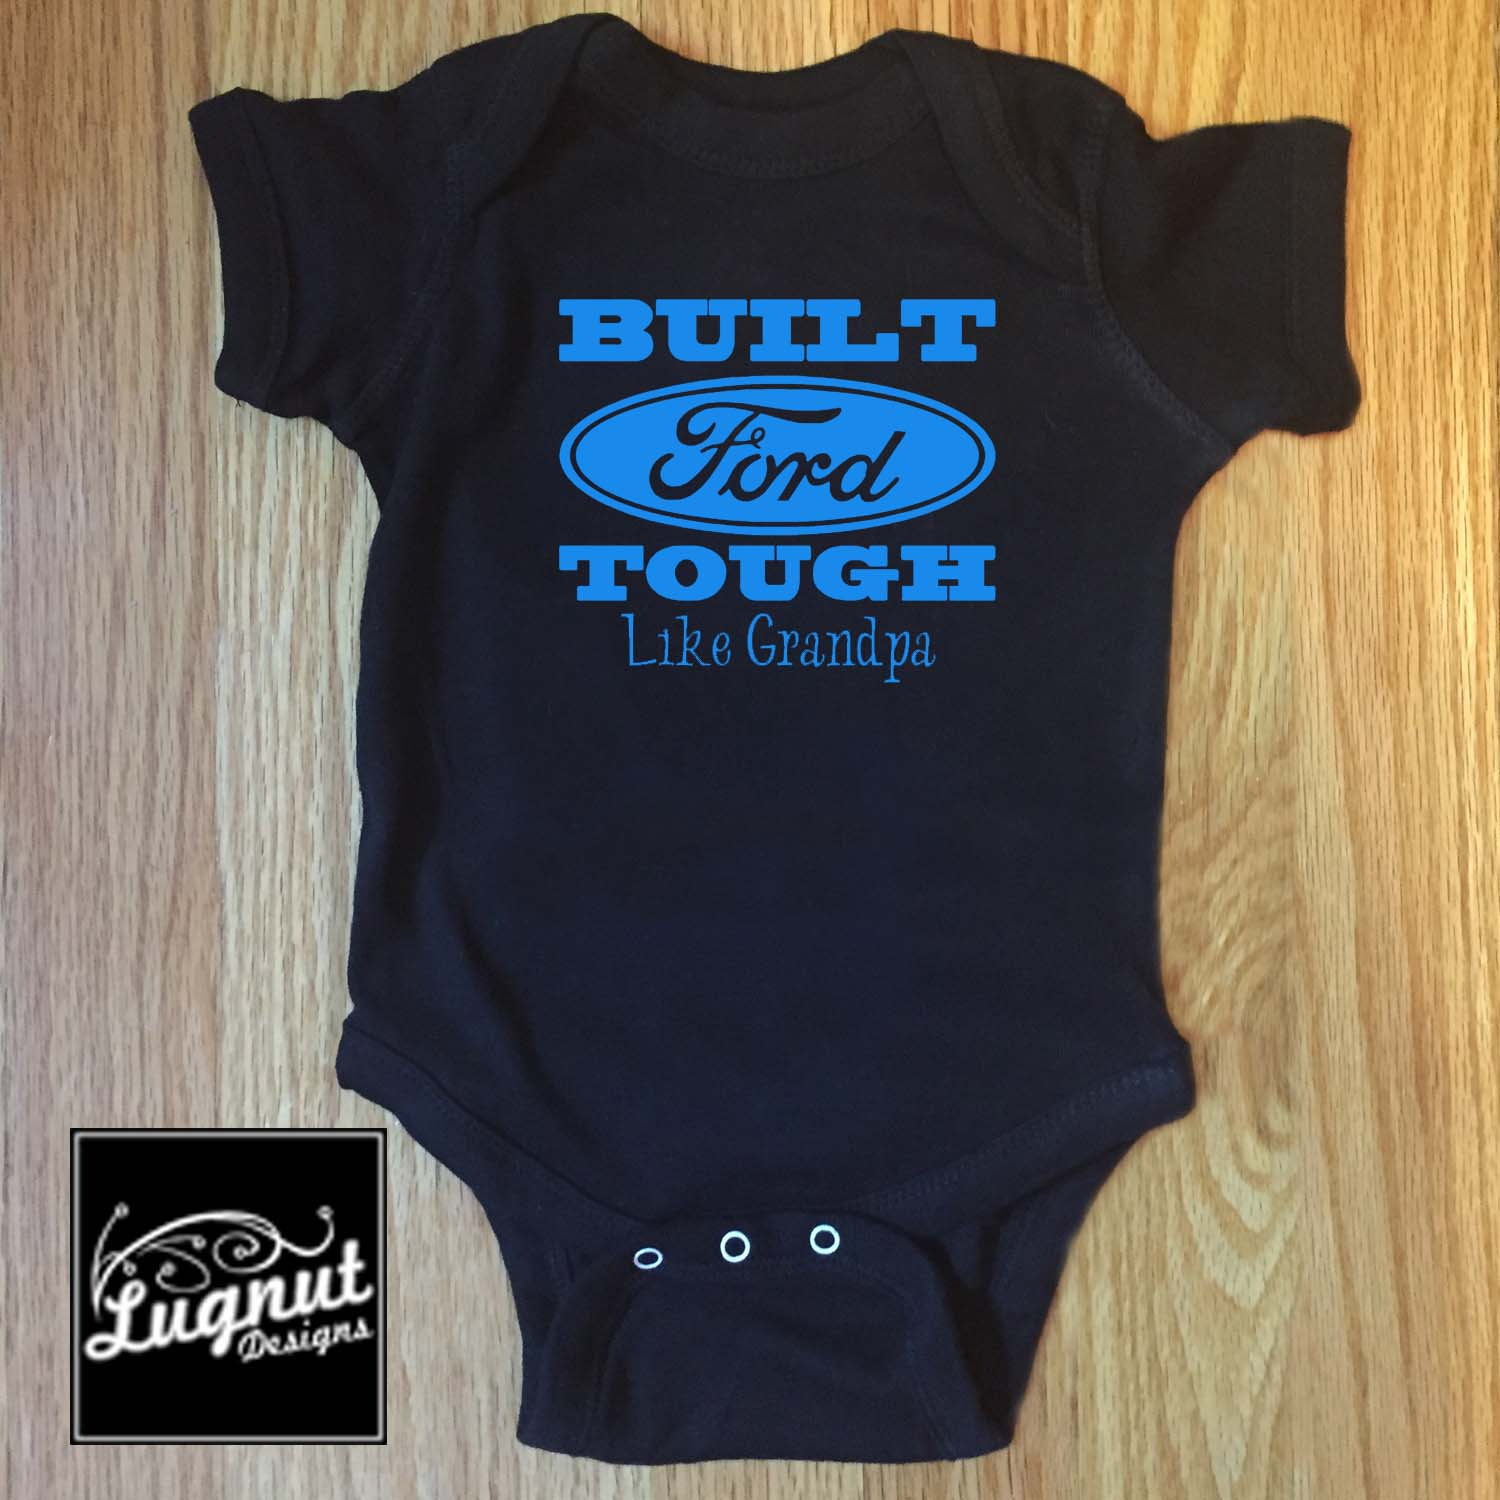 Built FORD Tough like Grandpa – Baby Bodysuit or Toddler TShirt